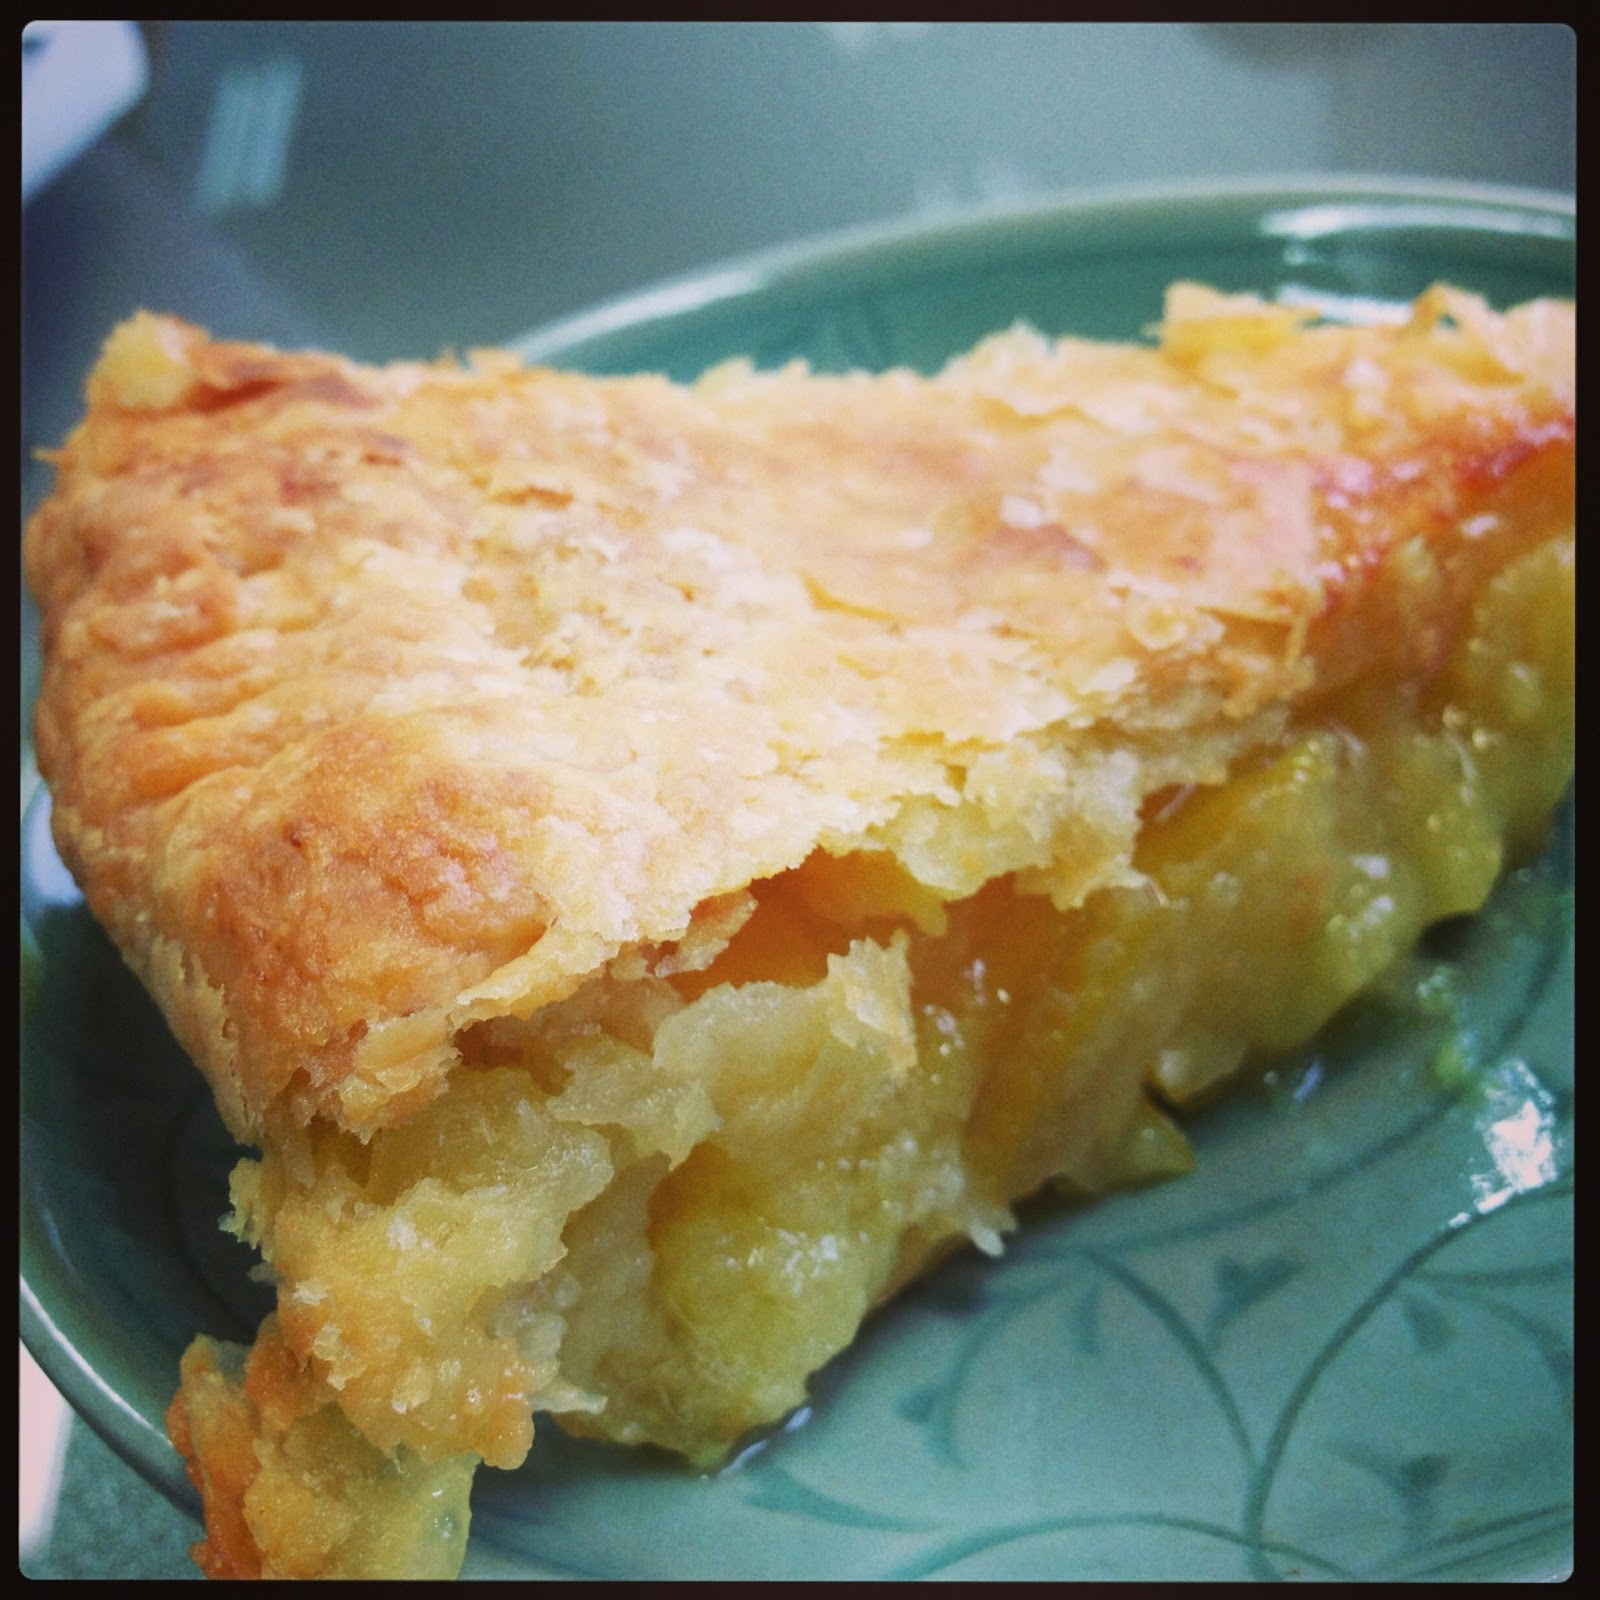 Baking in the Land of the a Thousand Hills: Shaker Lemon Pie